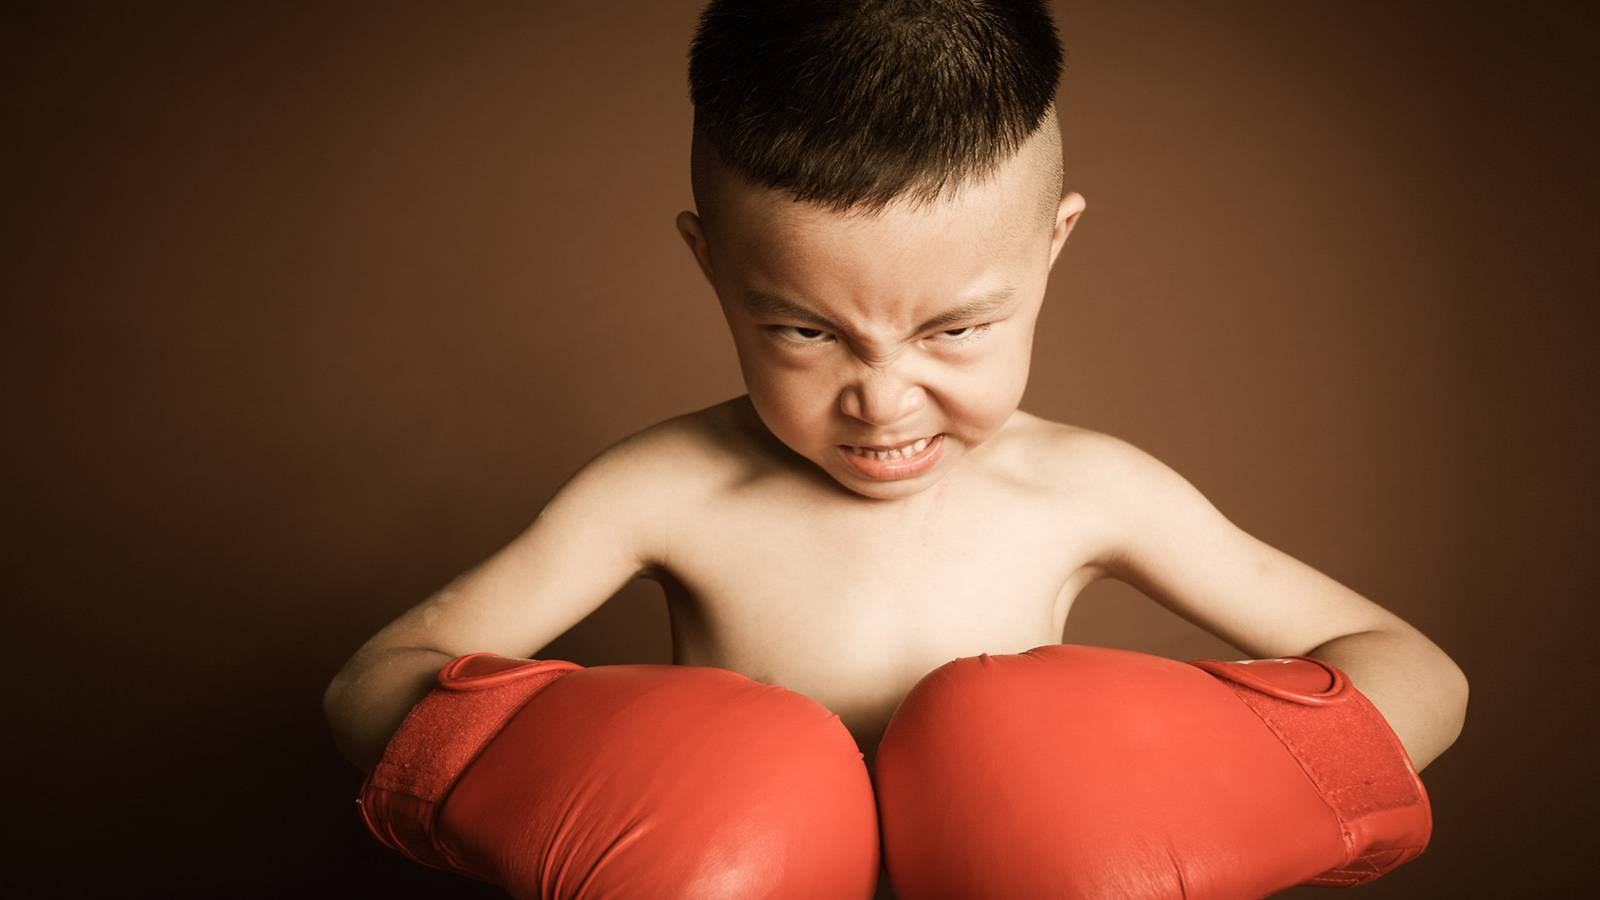 Kids-4-ways-to-toughen-up-your-kid